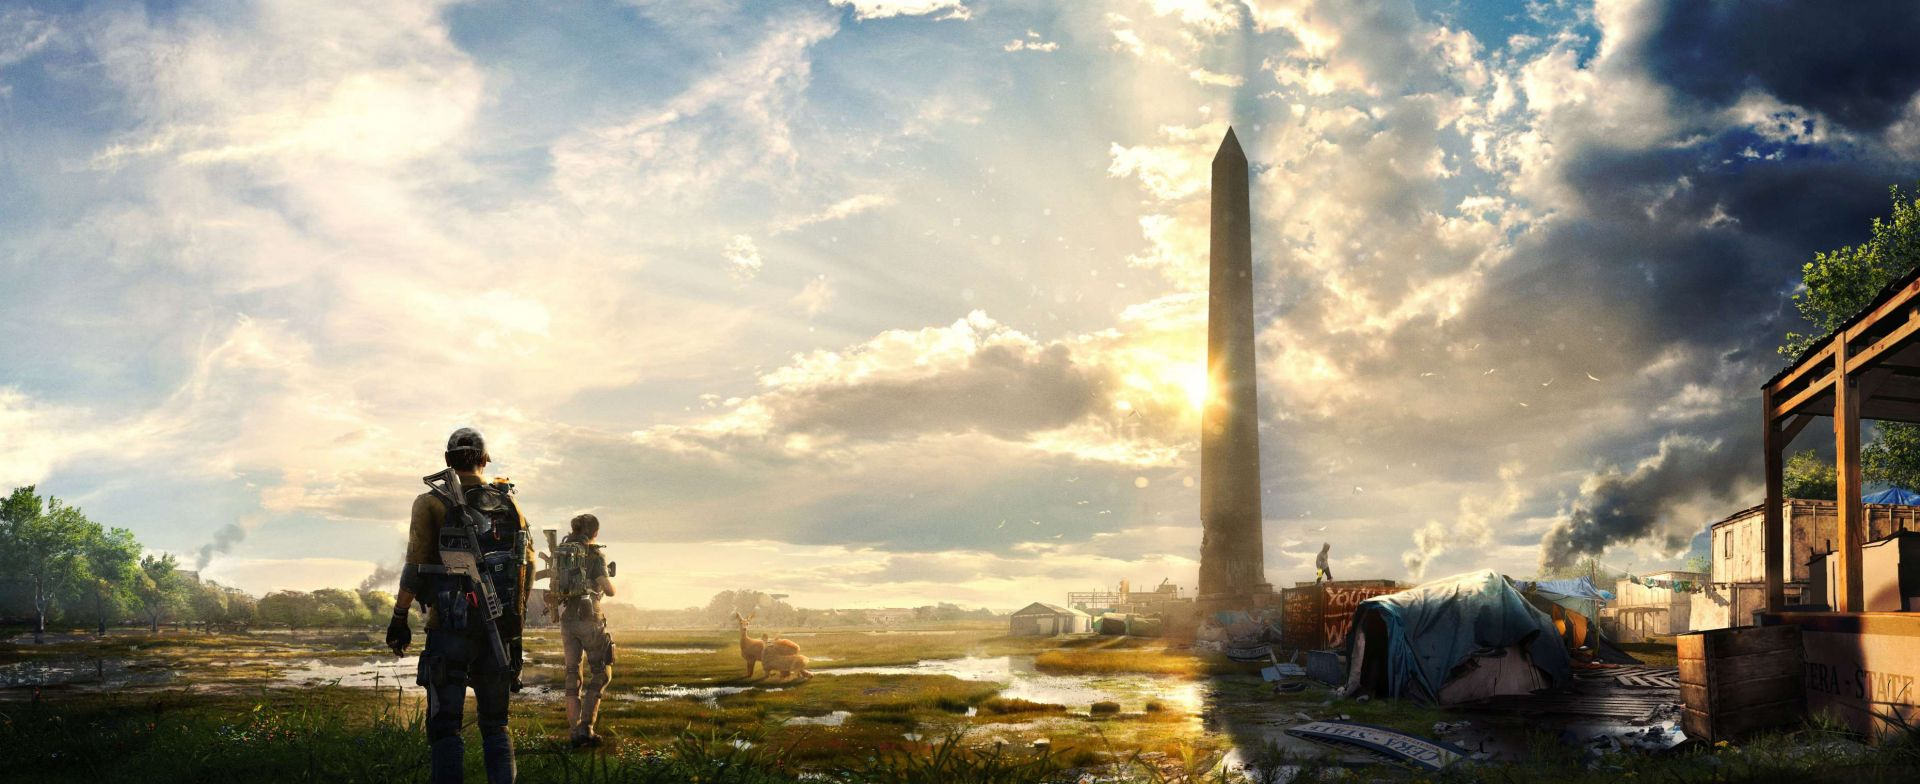 Tom Clancy's The Division 2 #6